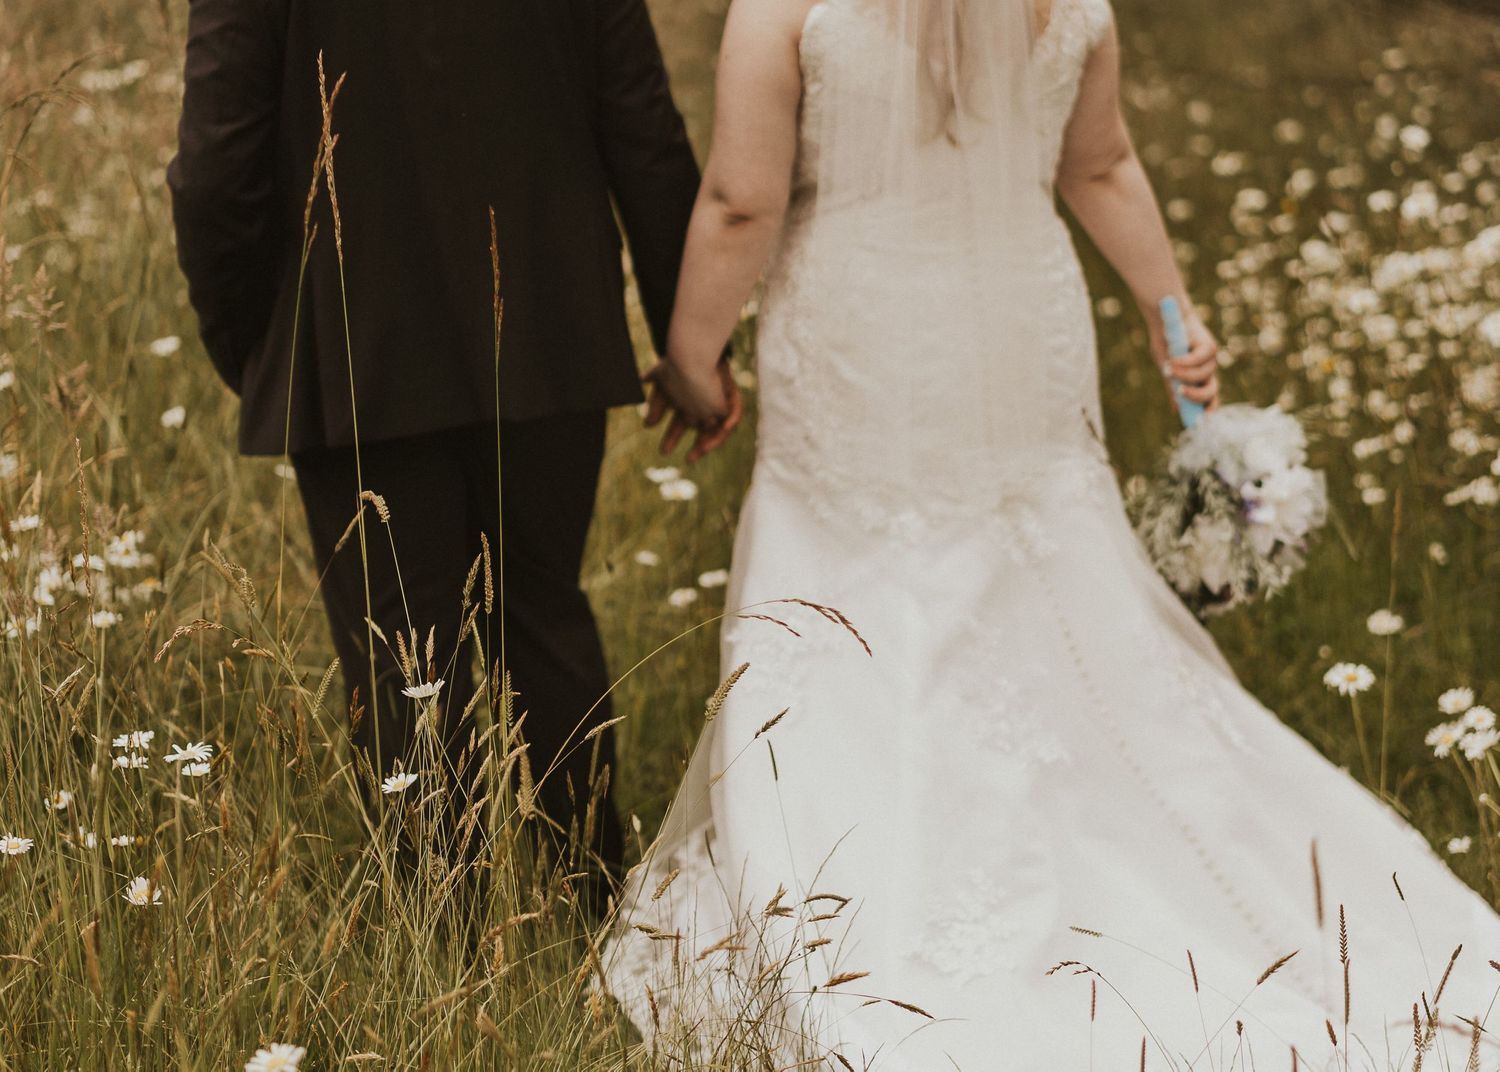 Newly married couple walks hand in hand through a field of daisys